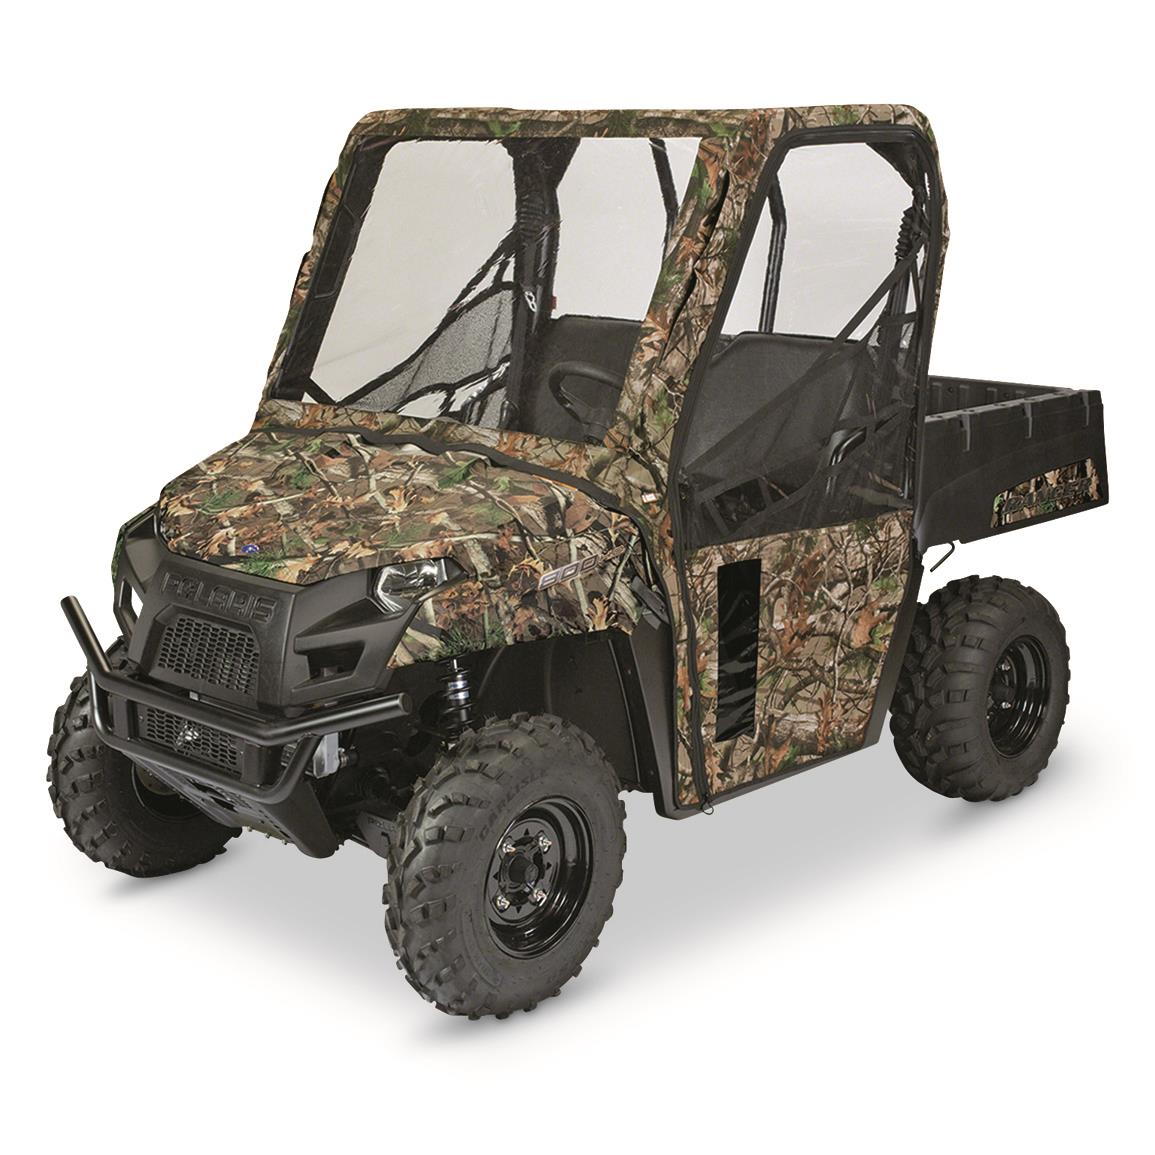 Quad Gear UTV Cab Enclosure, Kawasaki Mule 600 Series, Next Camo